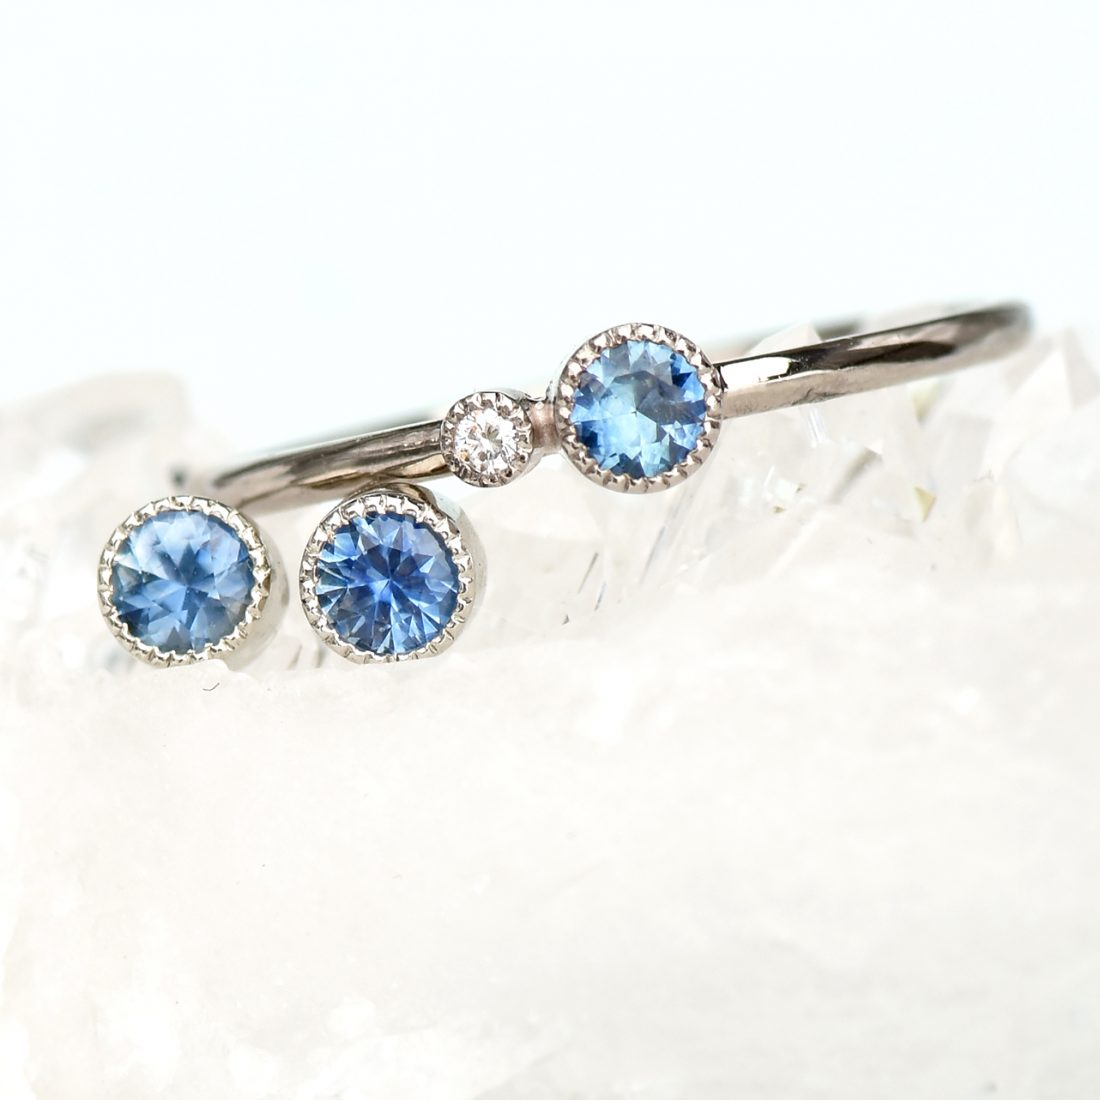 Sapphire stud earrings & Stacking Ring